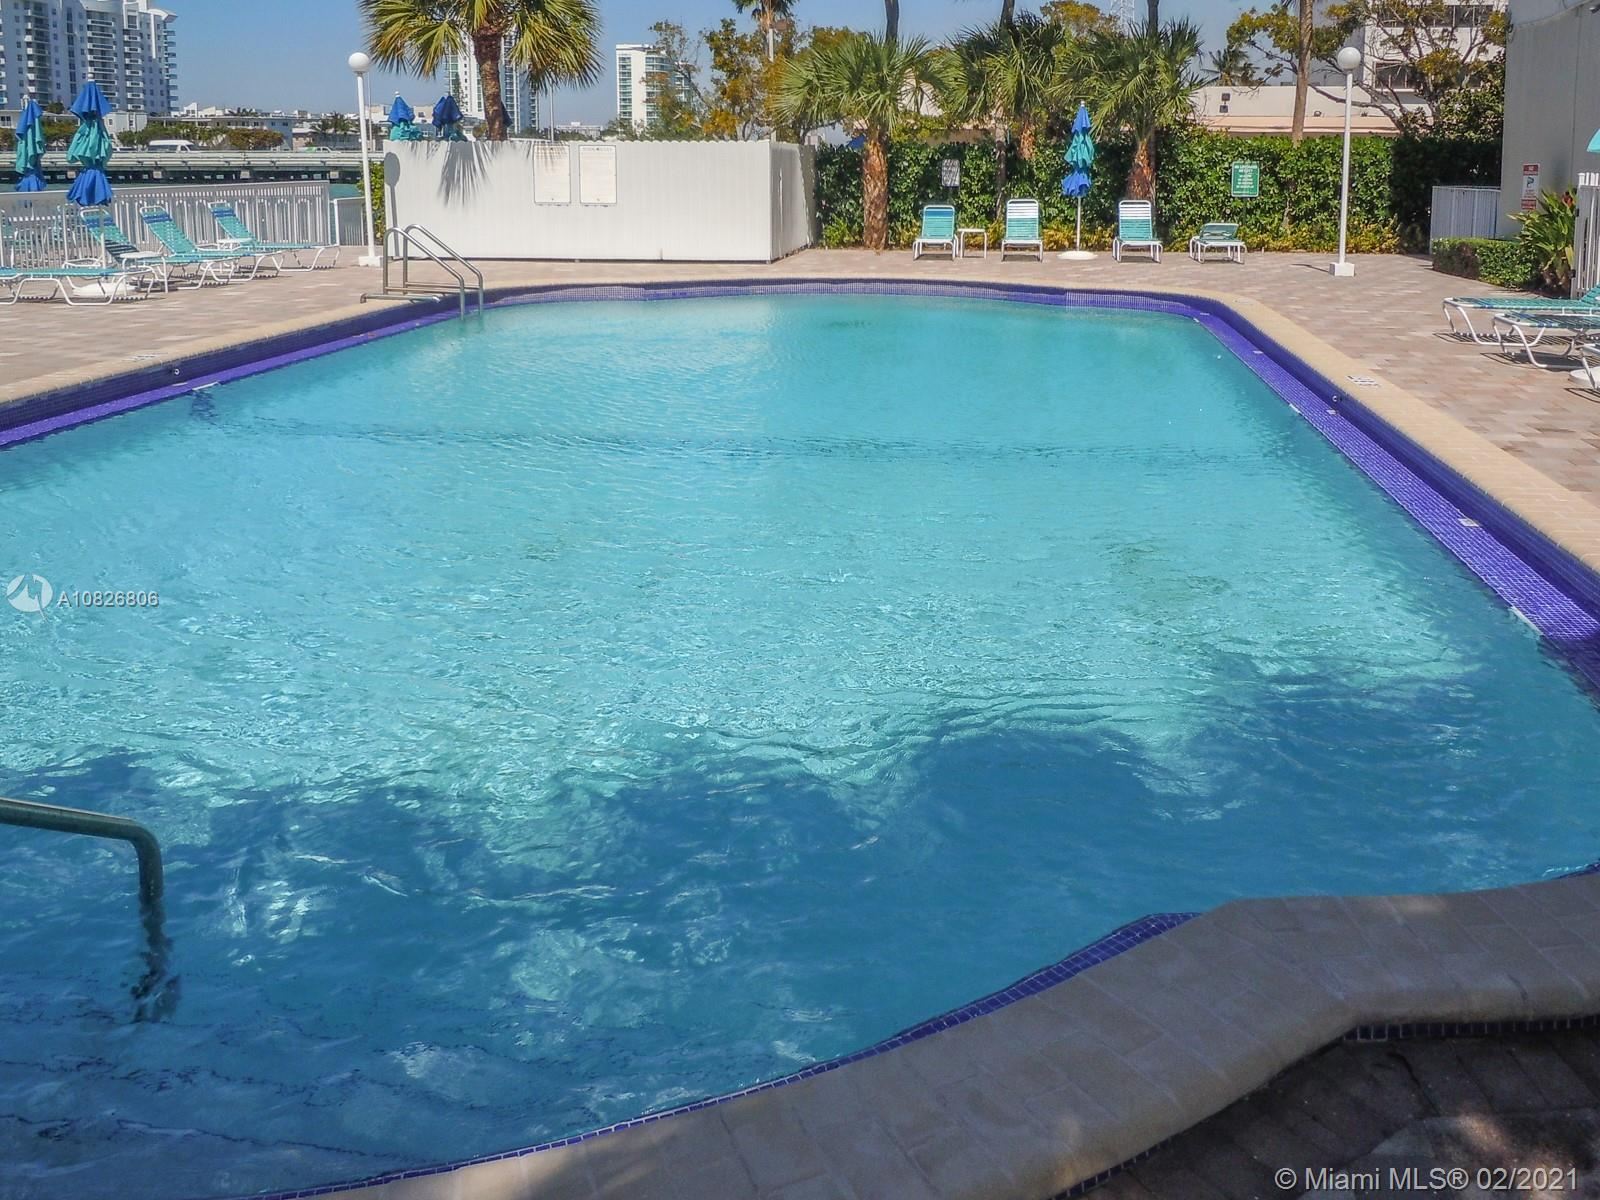 Island Place, 1455 N Treasure Dr Unit 7 D, North Bay Village, Florida 33141, image 39